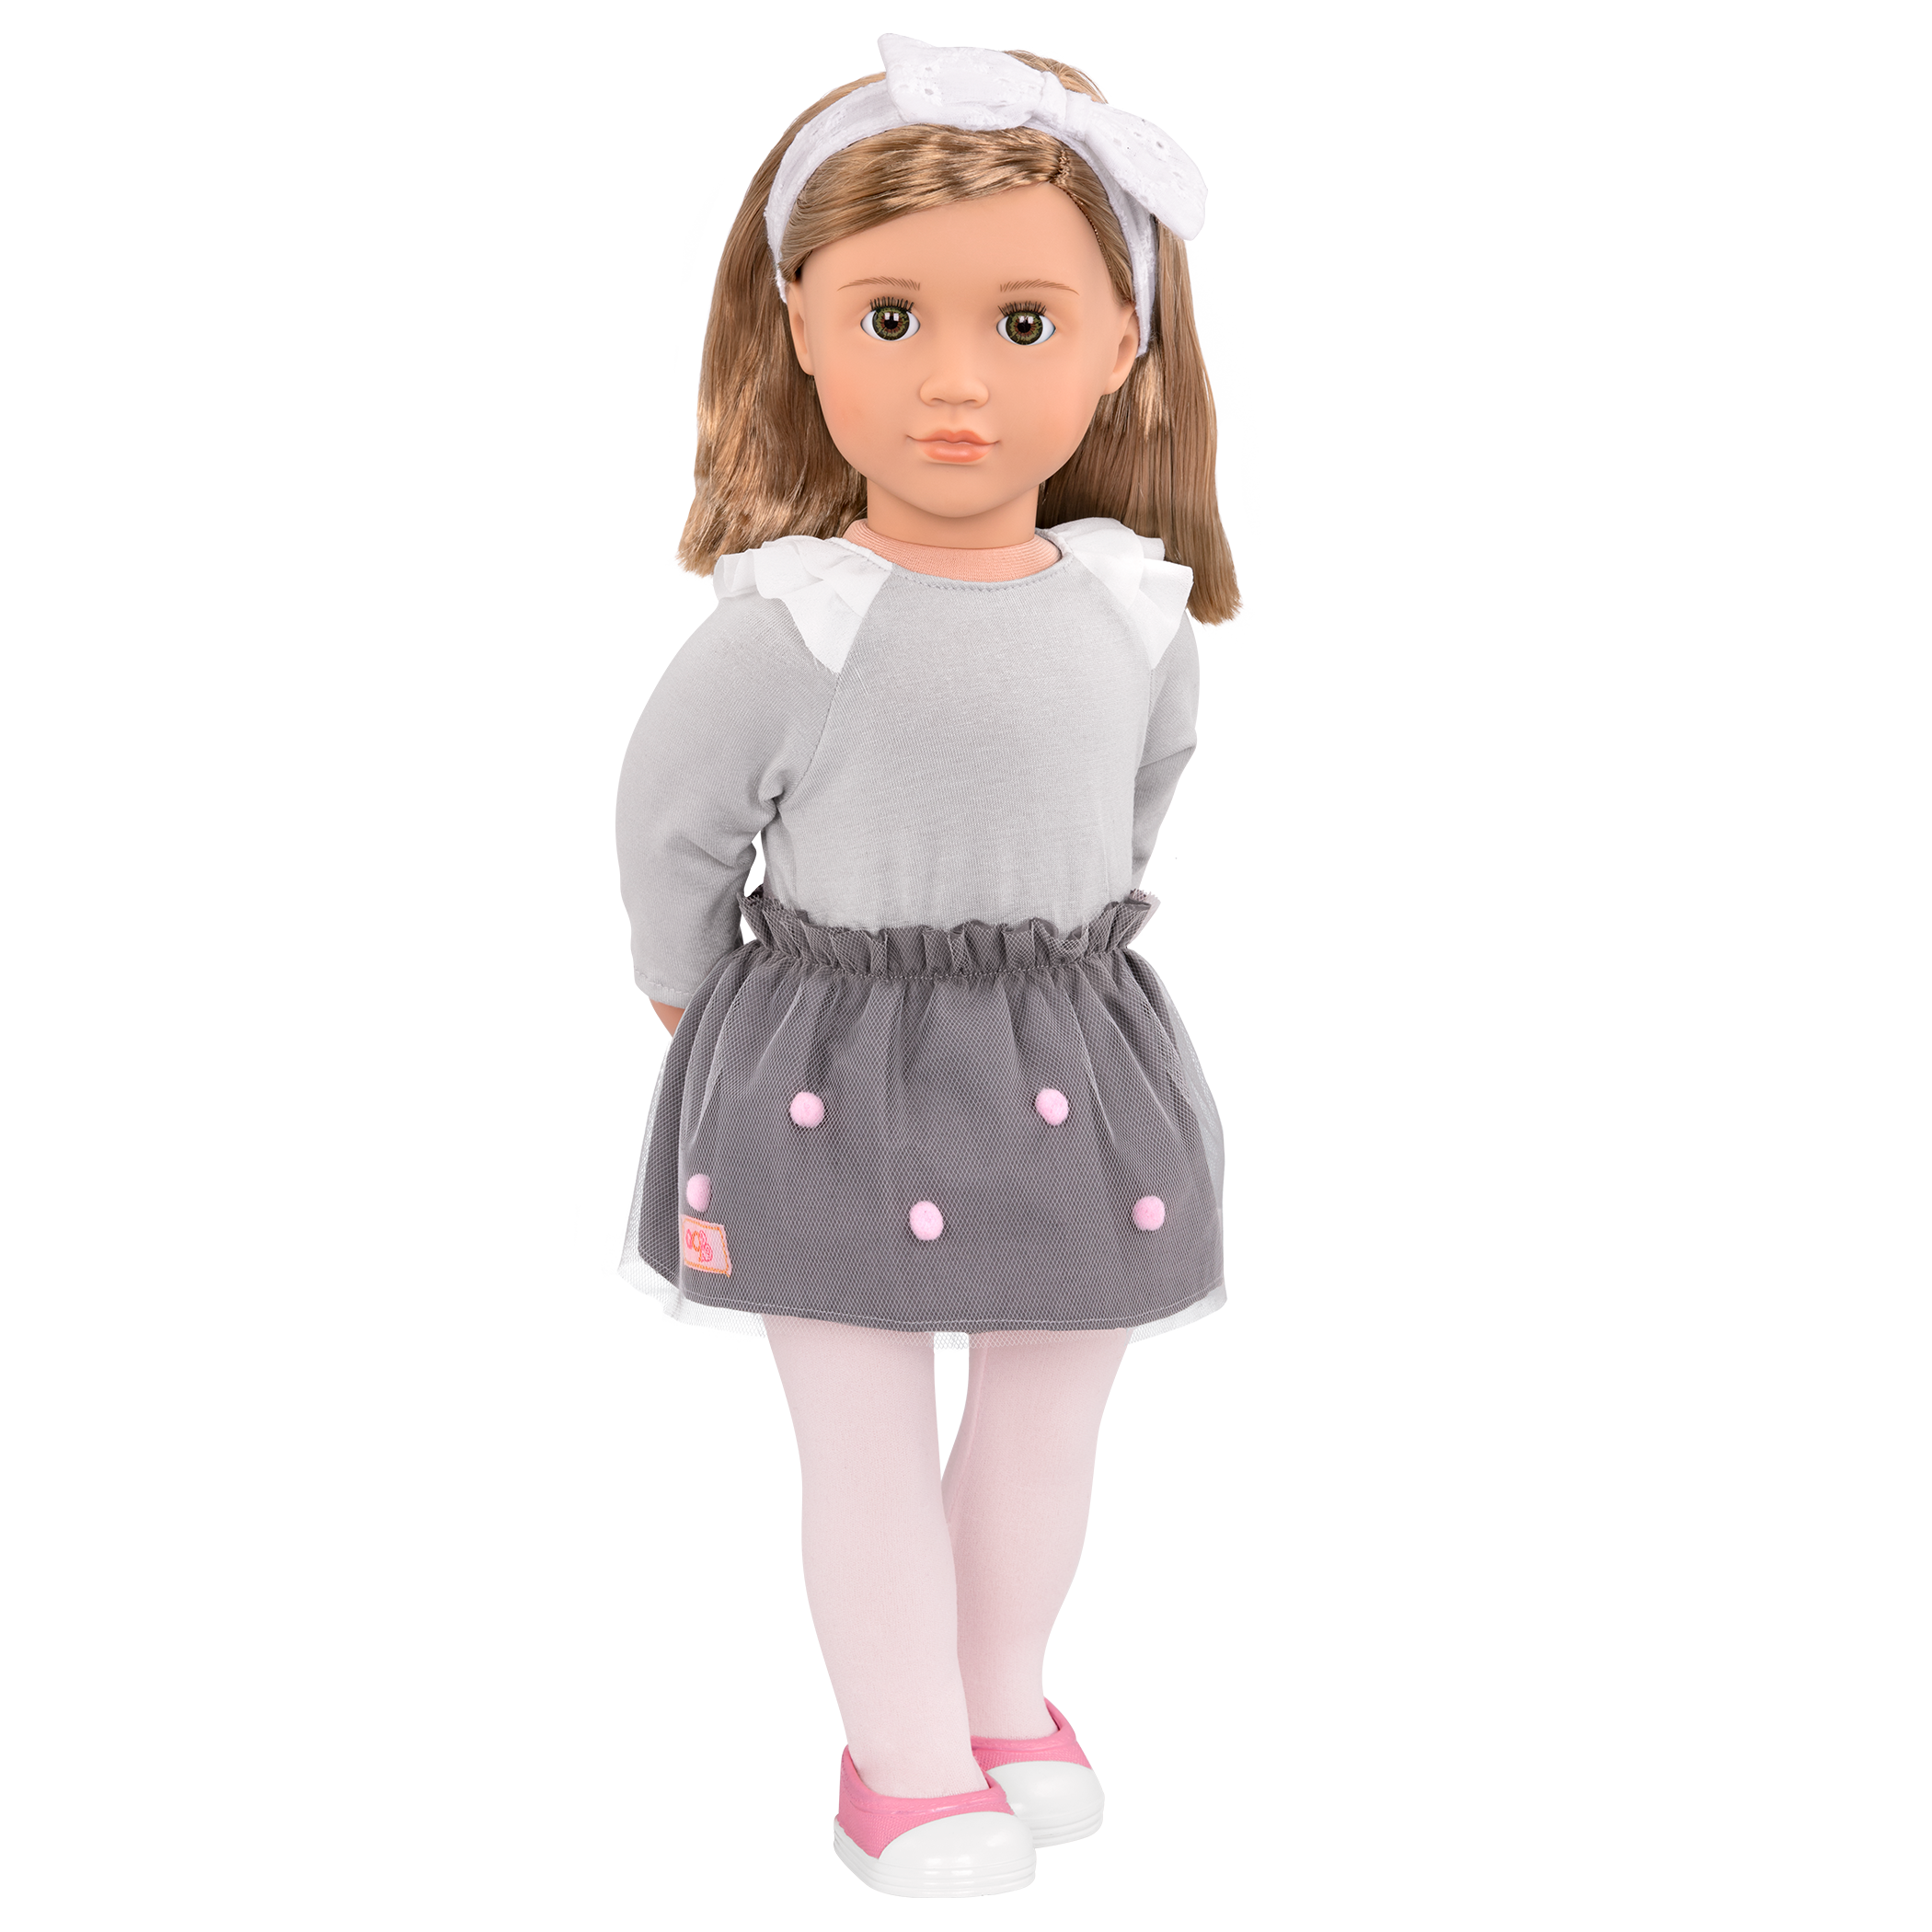 Bina 18-inch Doll with pom pom skirt